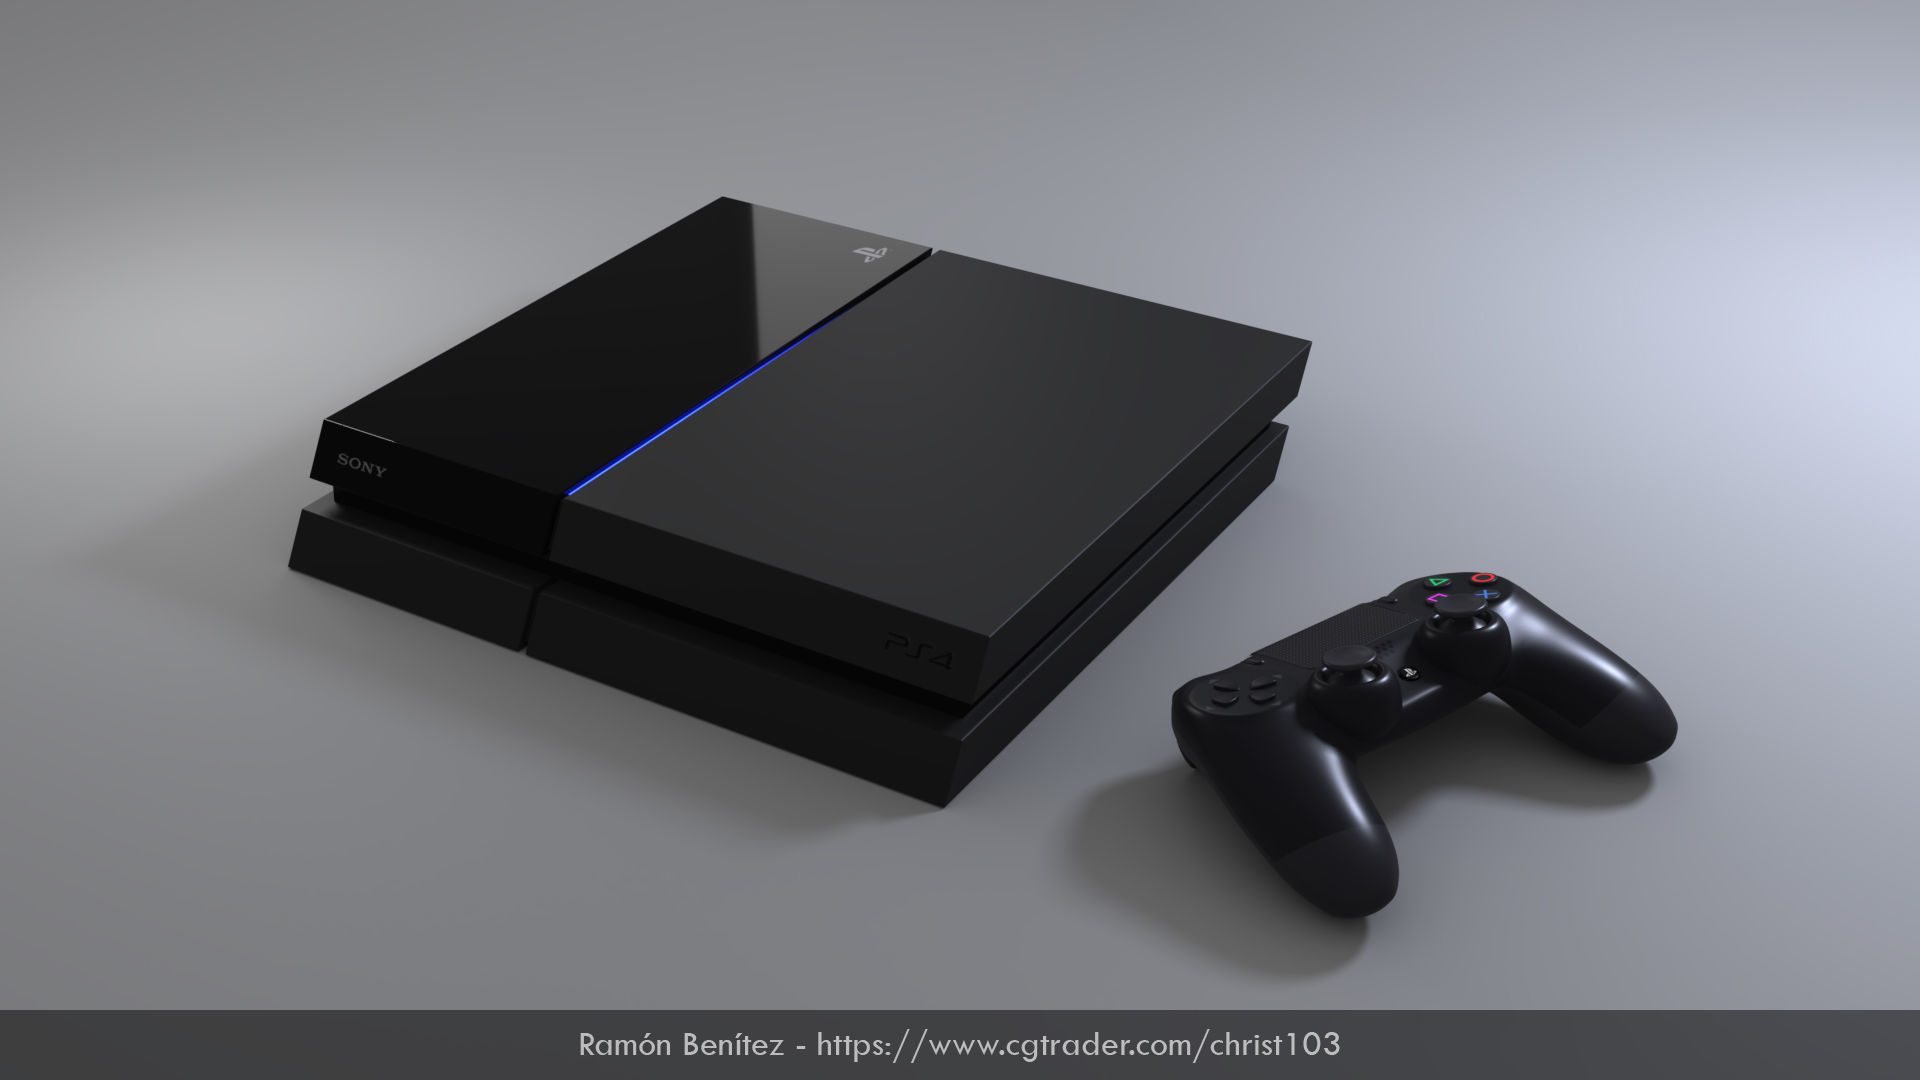 Sony Playstation 4 Low Poly